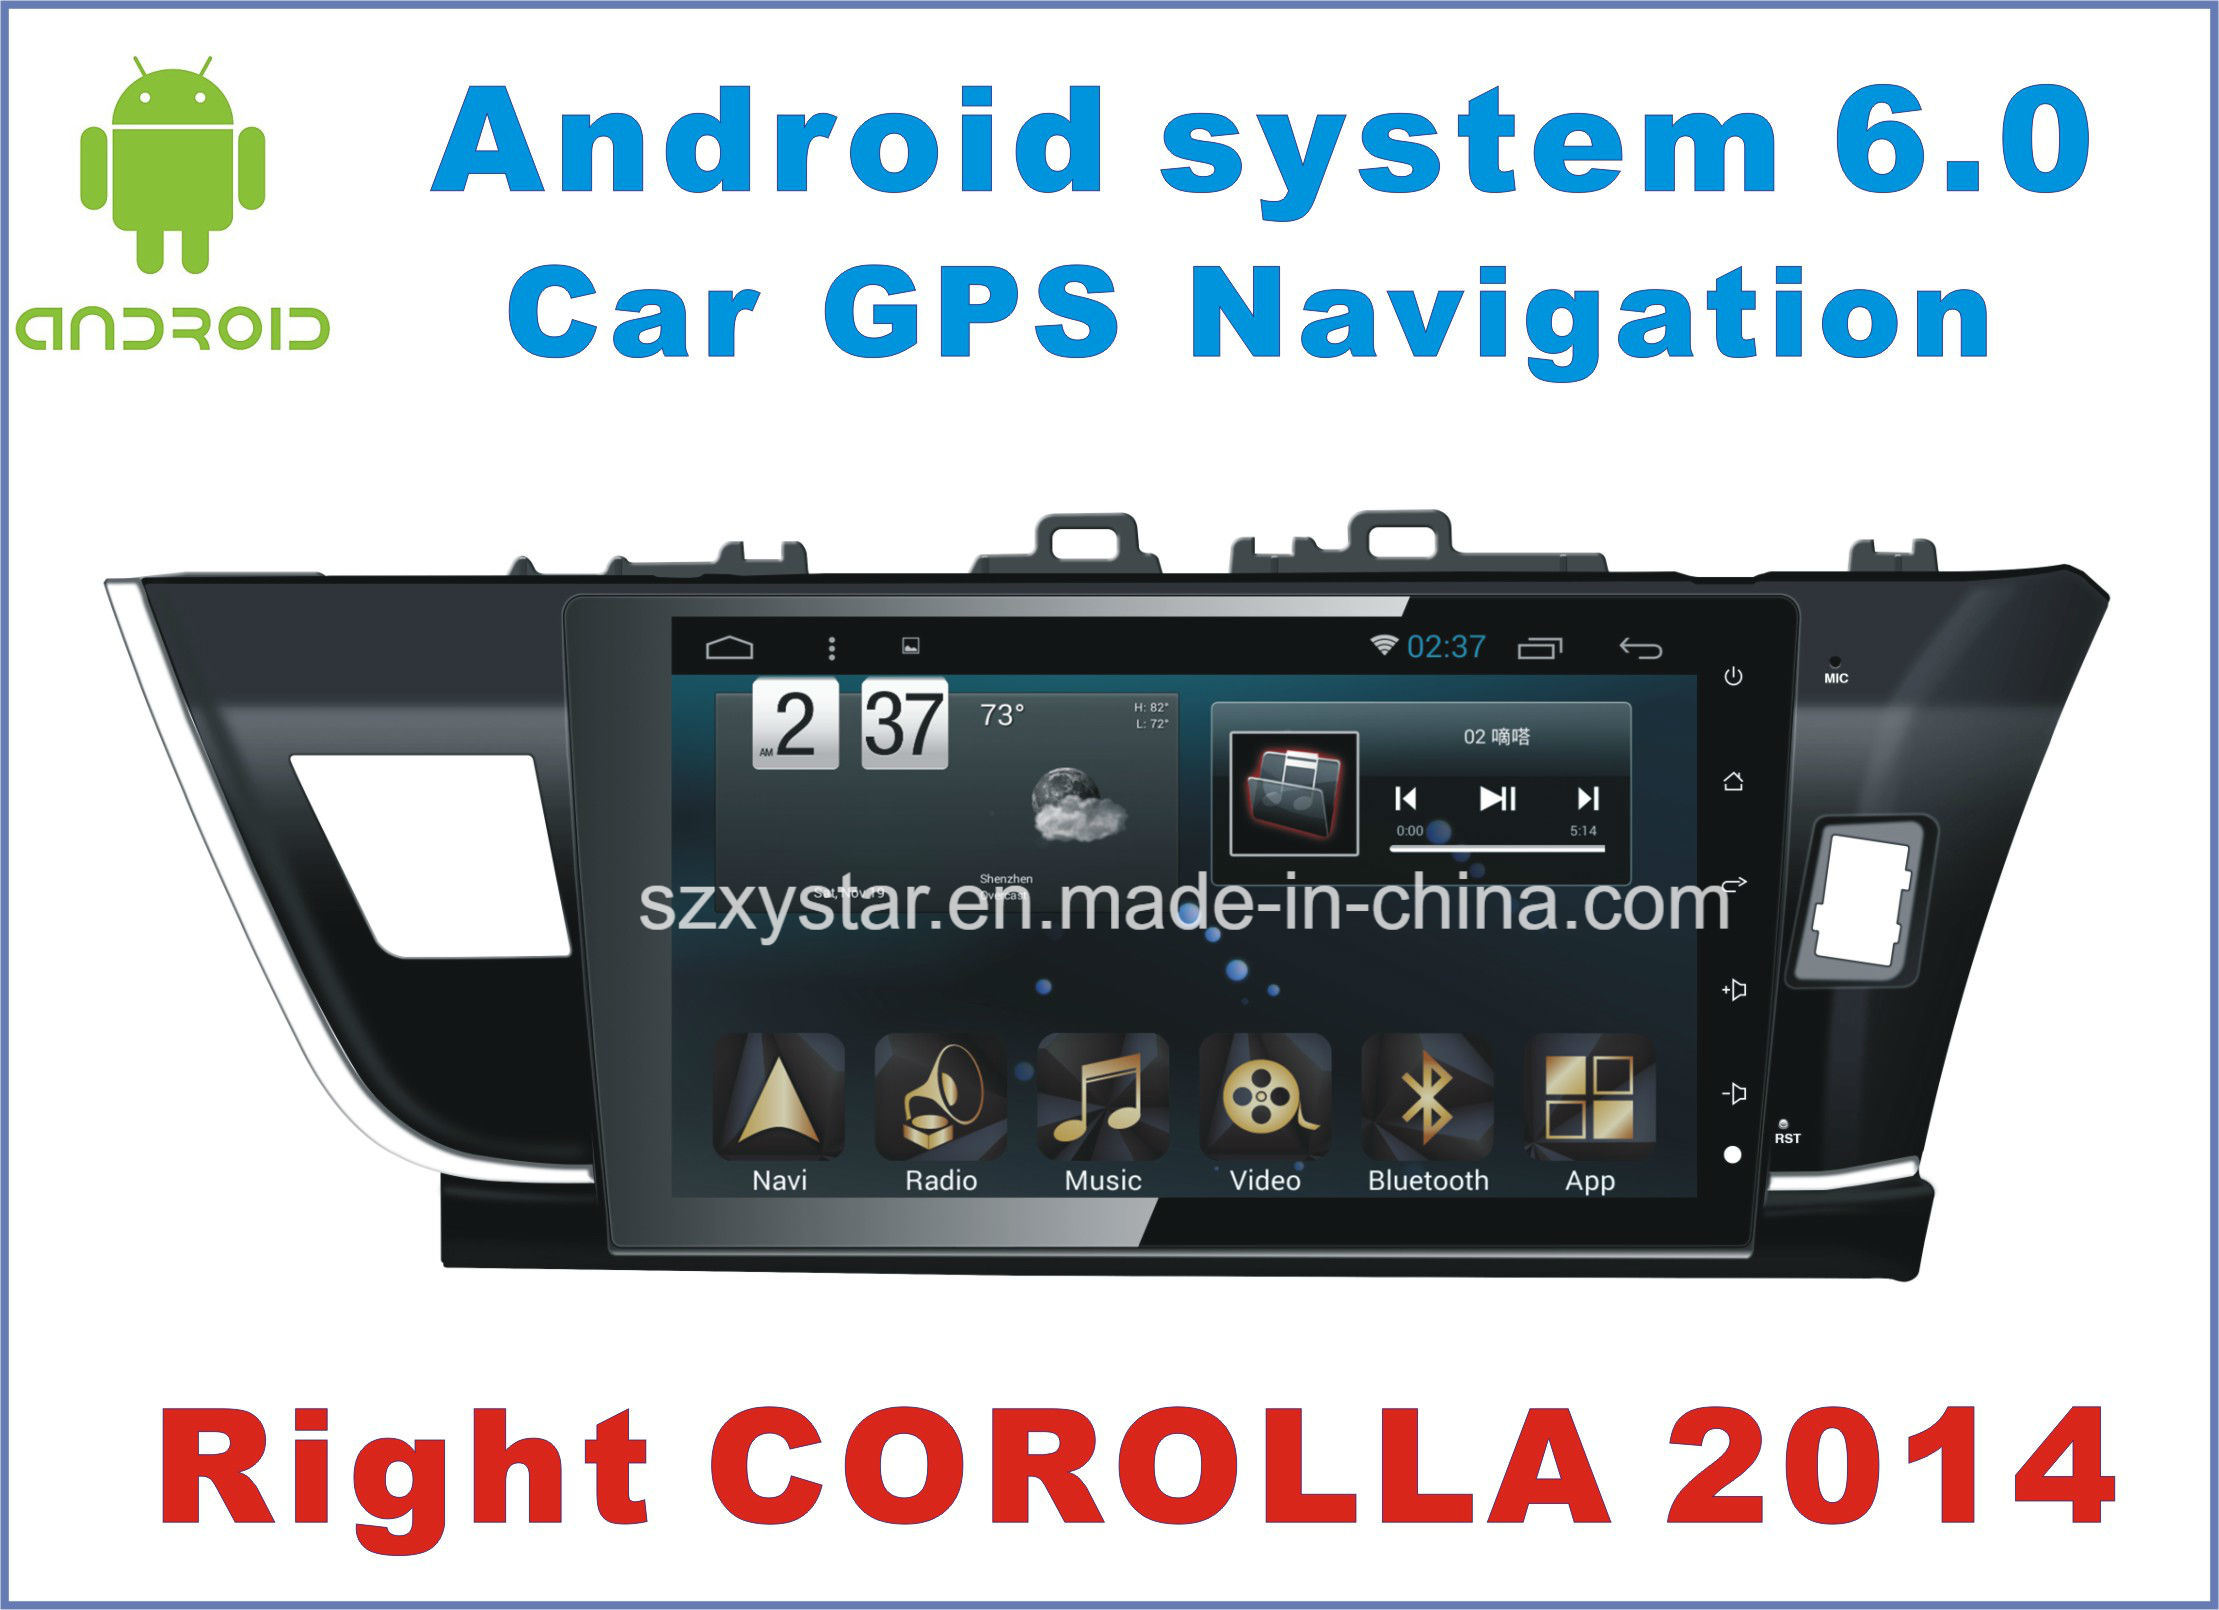 New Ui Android 6.0 Car DVD for Right Corolla 2014 with Car Navigation